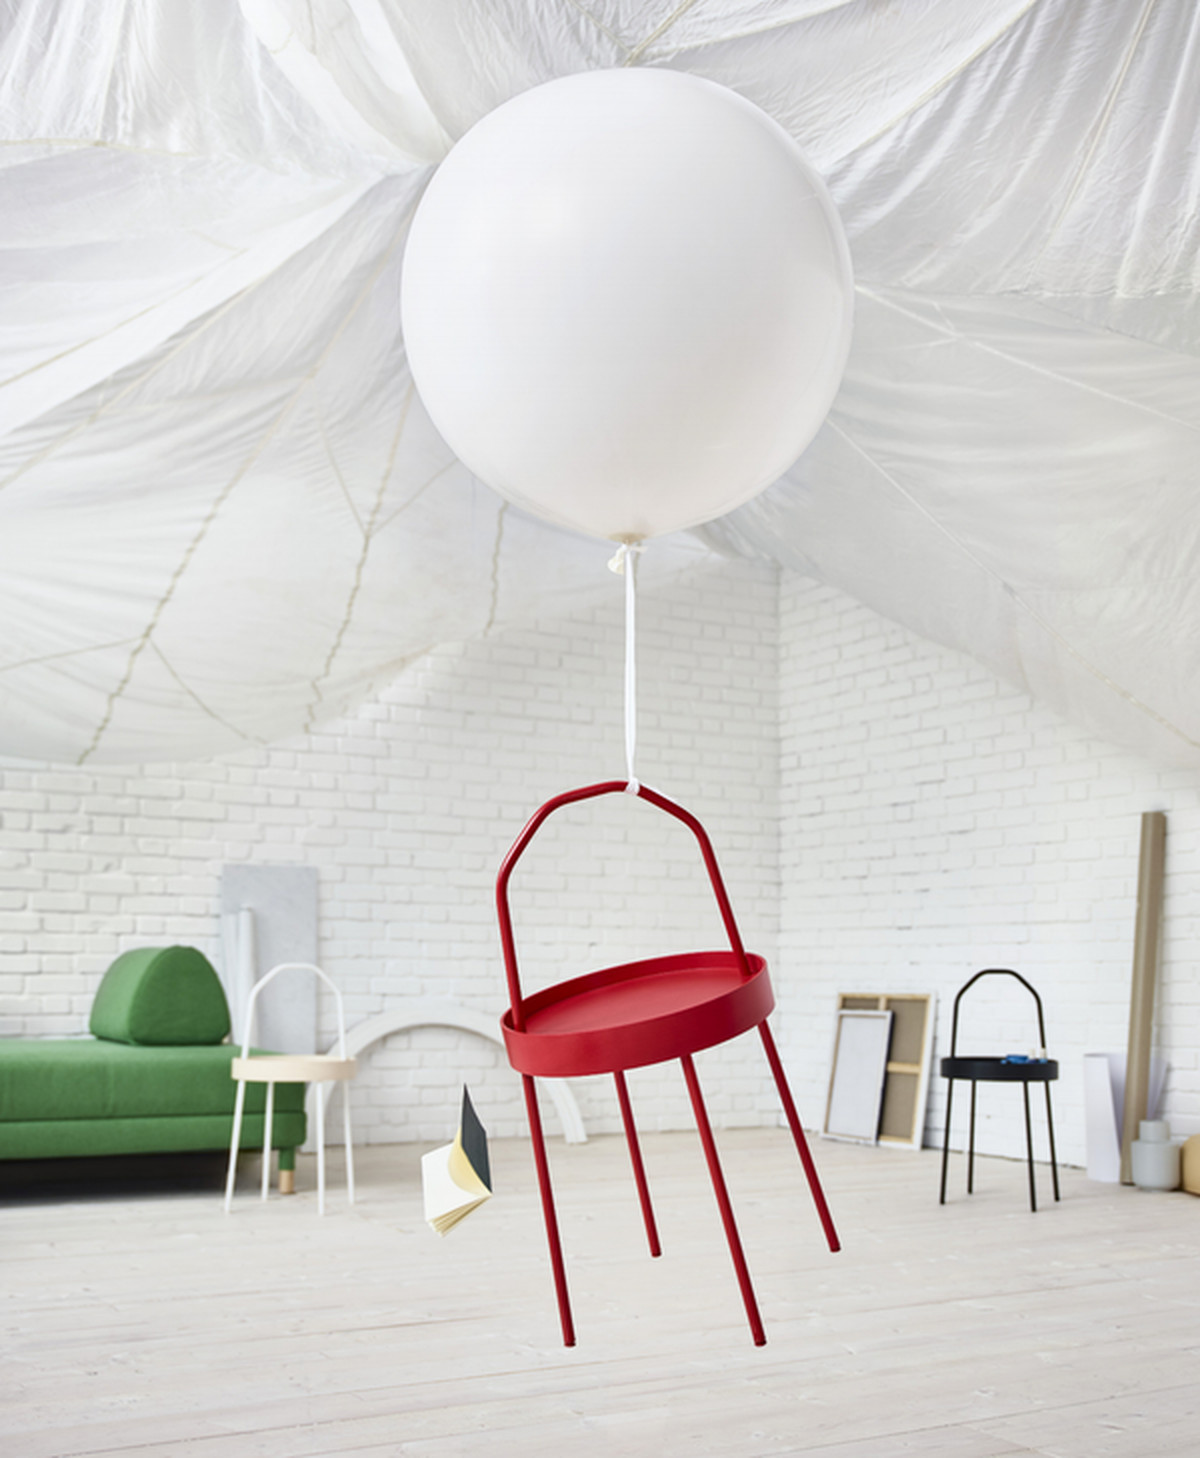 Ikeas new products coming in february have a playful 80s vibe curbed the circular burvik side table has gasp a handle for all those times you need to carry a table around with you must be made for digital nomads and gumiabroncs Images